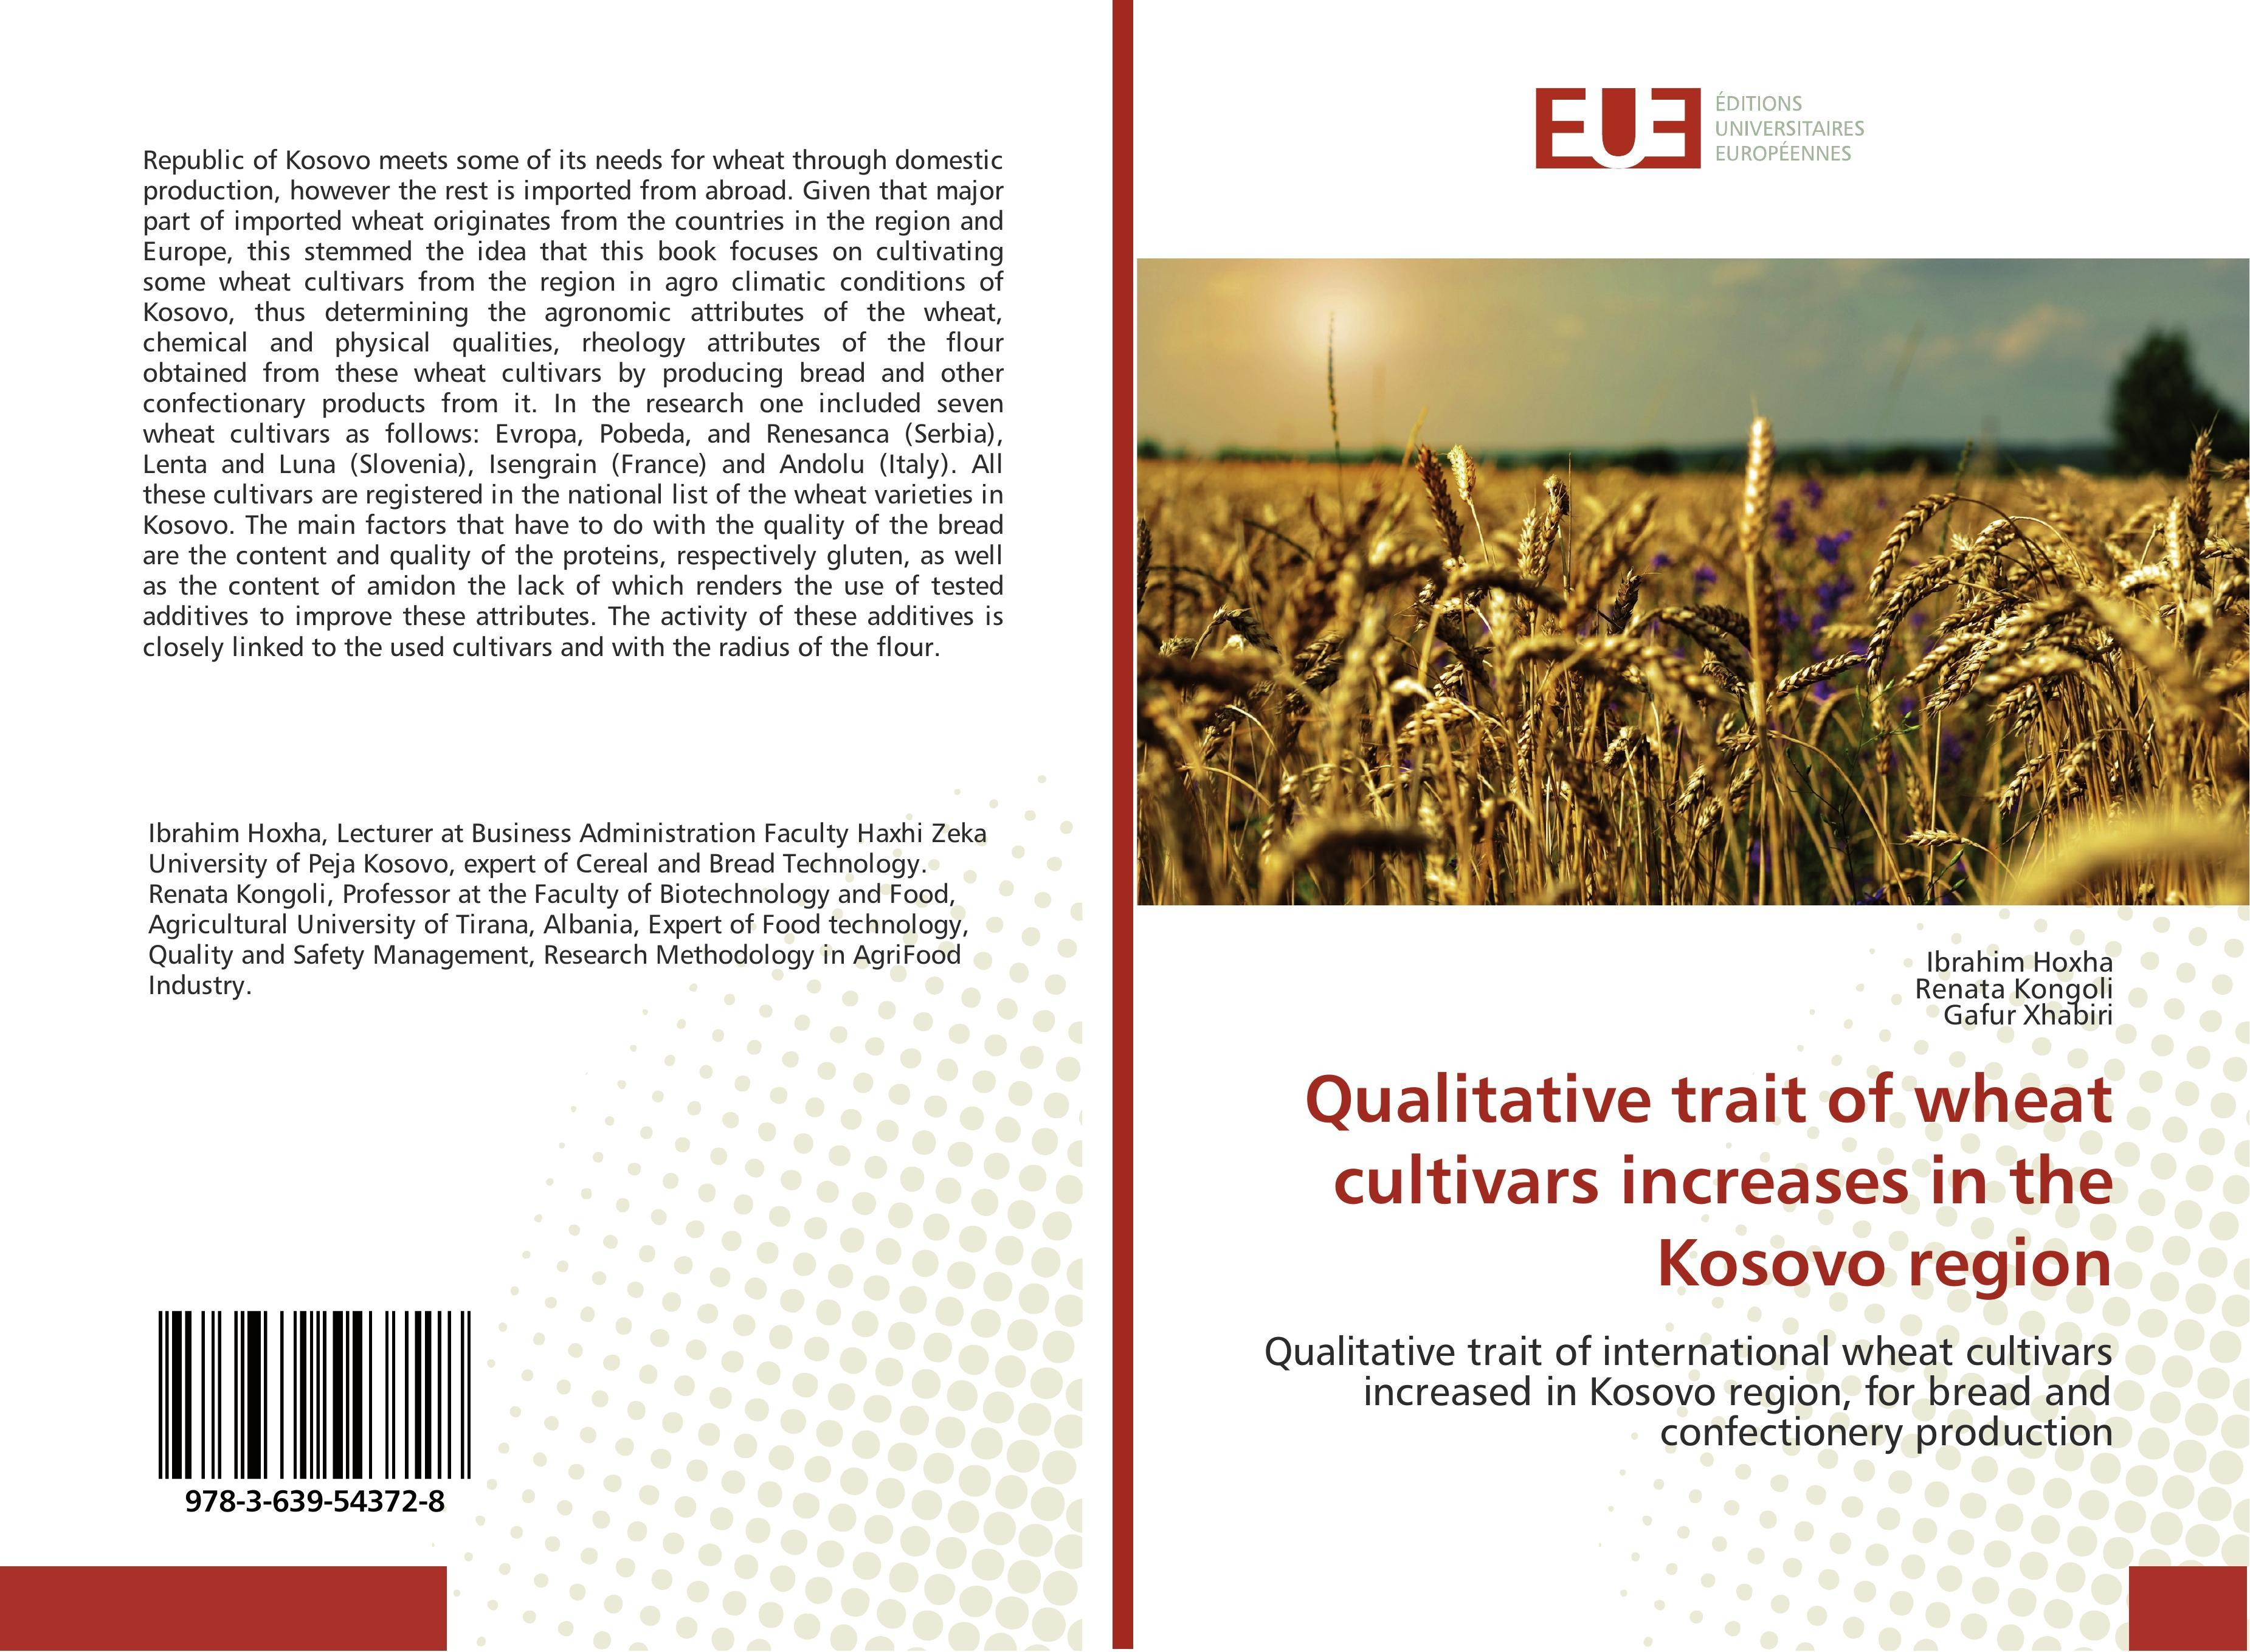 Qualitative trait of wheat cultivars increases in the Kosovo ... 9783639543728